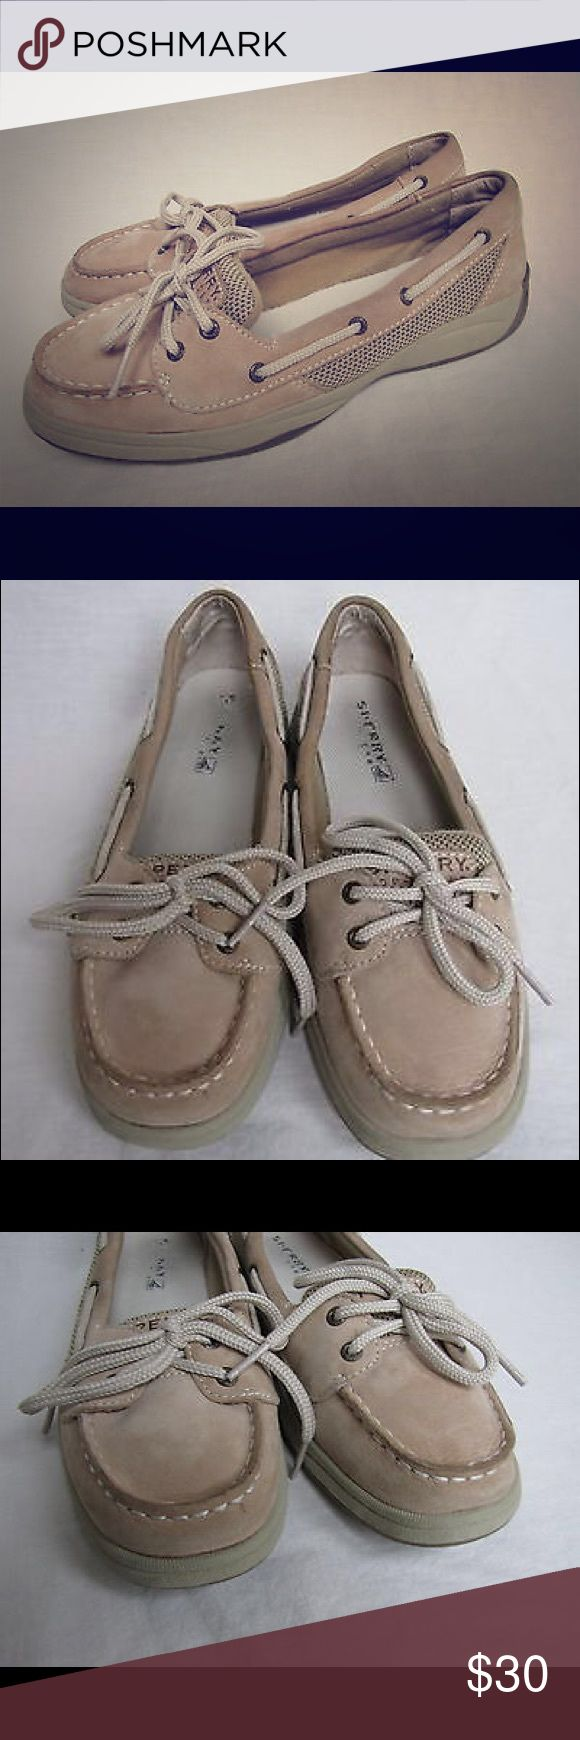 Girls Sperry Laguna Beige Leather Boat Shoes Girls Sperry Top Sider Laguna Beige Leather Boat Shoes Sz 5M. Model #YG42010A. Good condition- minor marks on the shoes, no smells or tears. Lace-up shoes, synthetic textile on teh sides. Feel free to ask questions. Sperry Top-Sider Shoes Moccasins